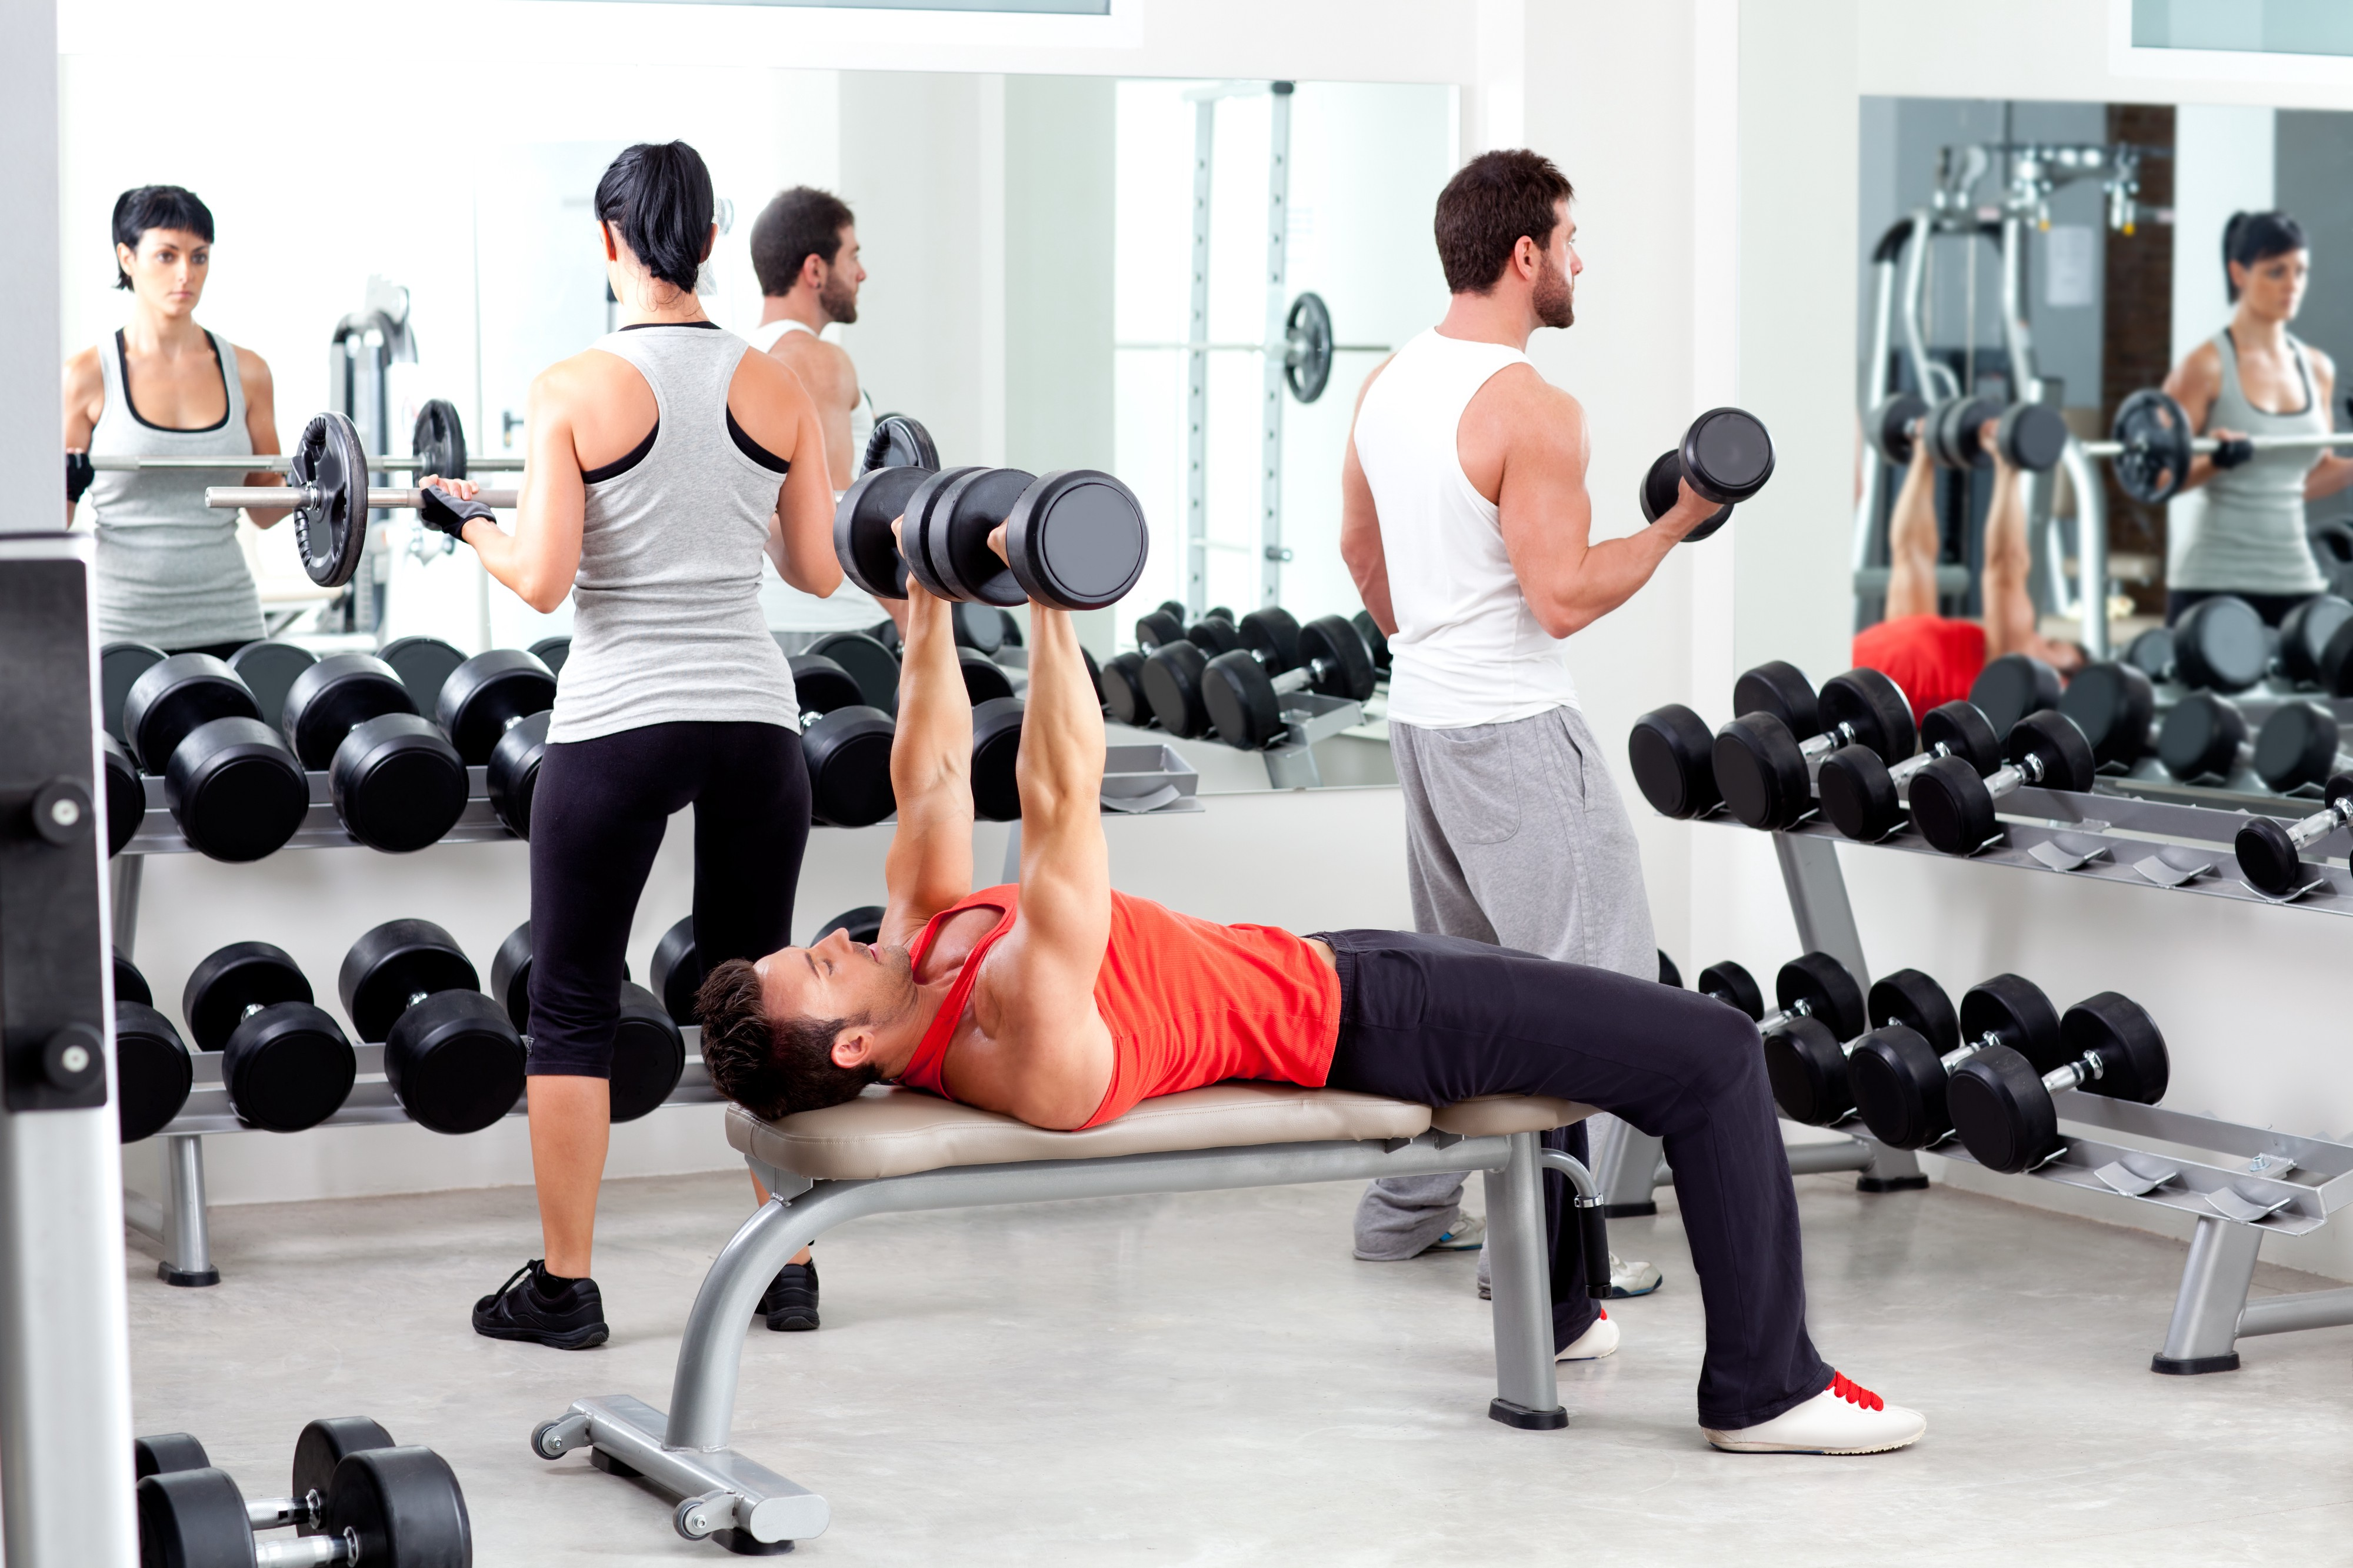 WORKOUTS FOR GYM BEGINNERS. Everyone has to start somewhere and… | by Swati Khandelwal | Medium